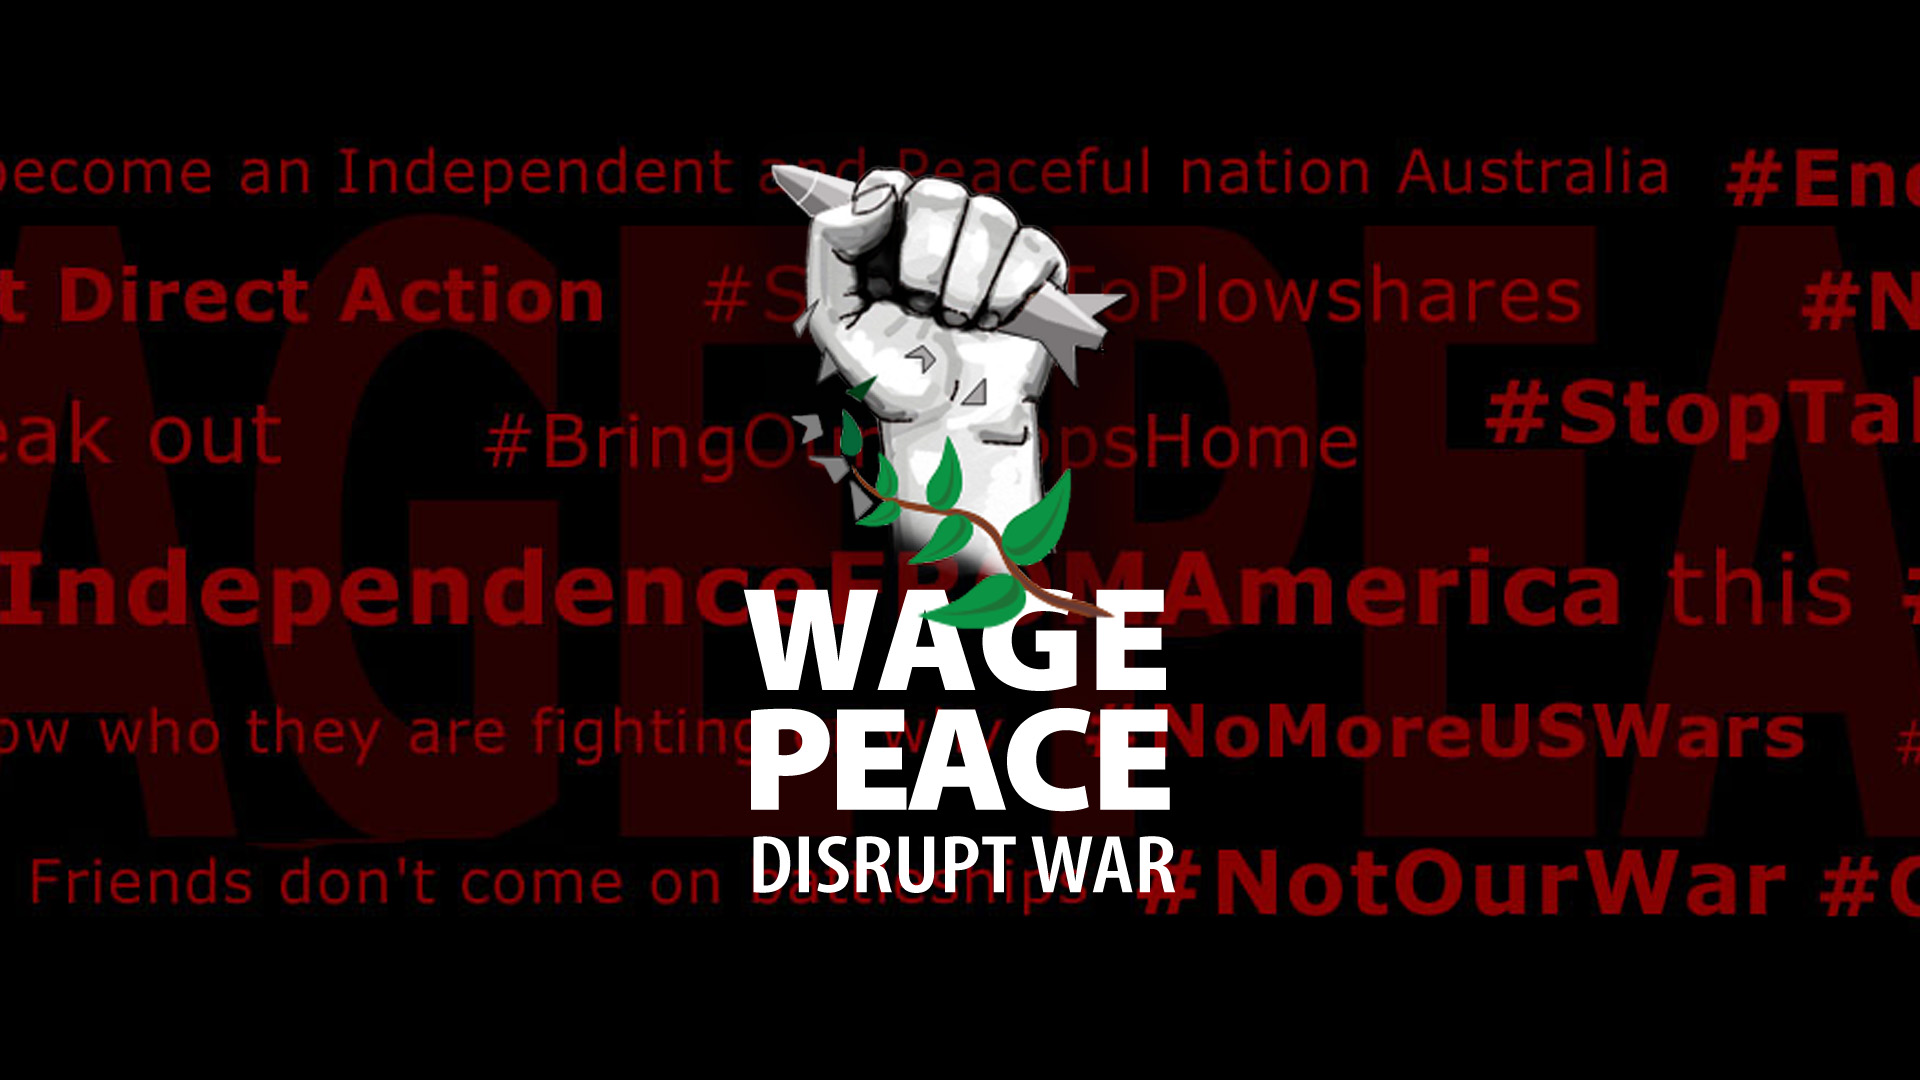 Wage Peace Twitter Header with relevant Twitter hashtags in the background